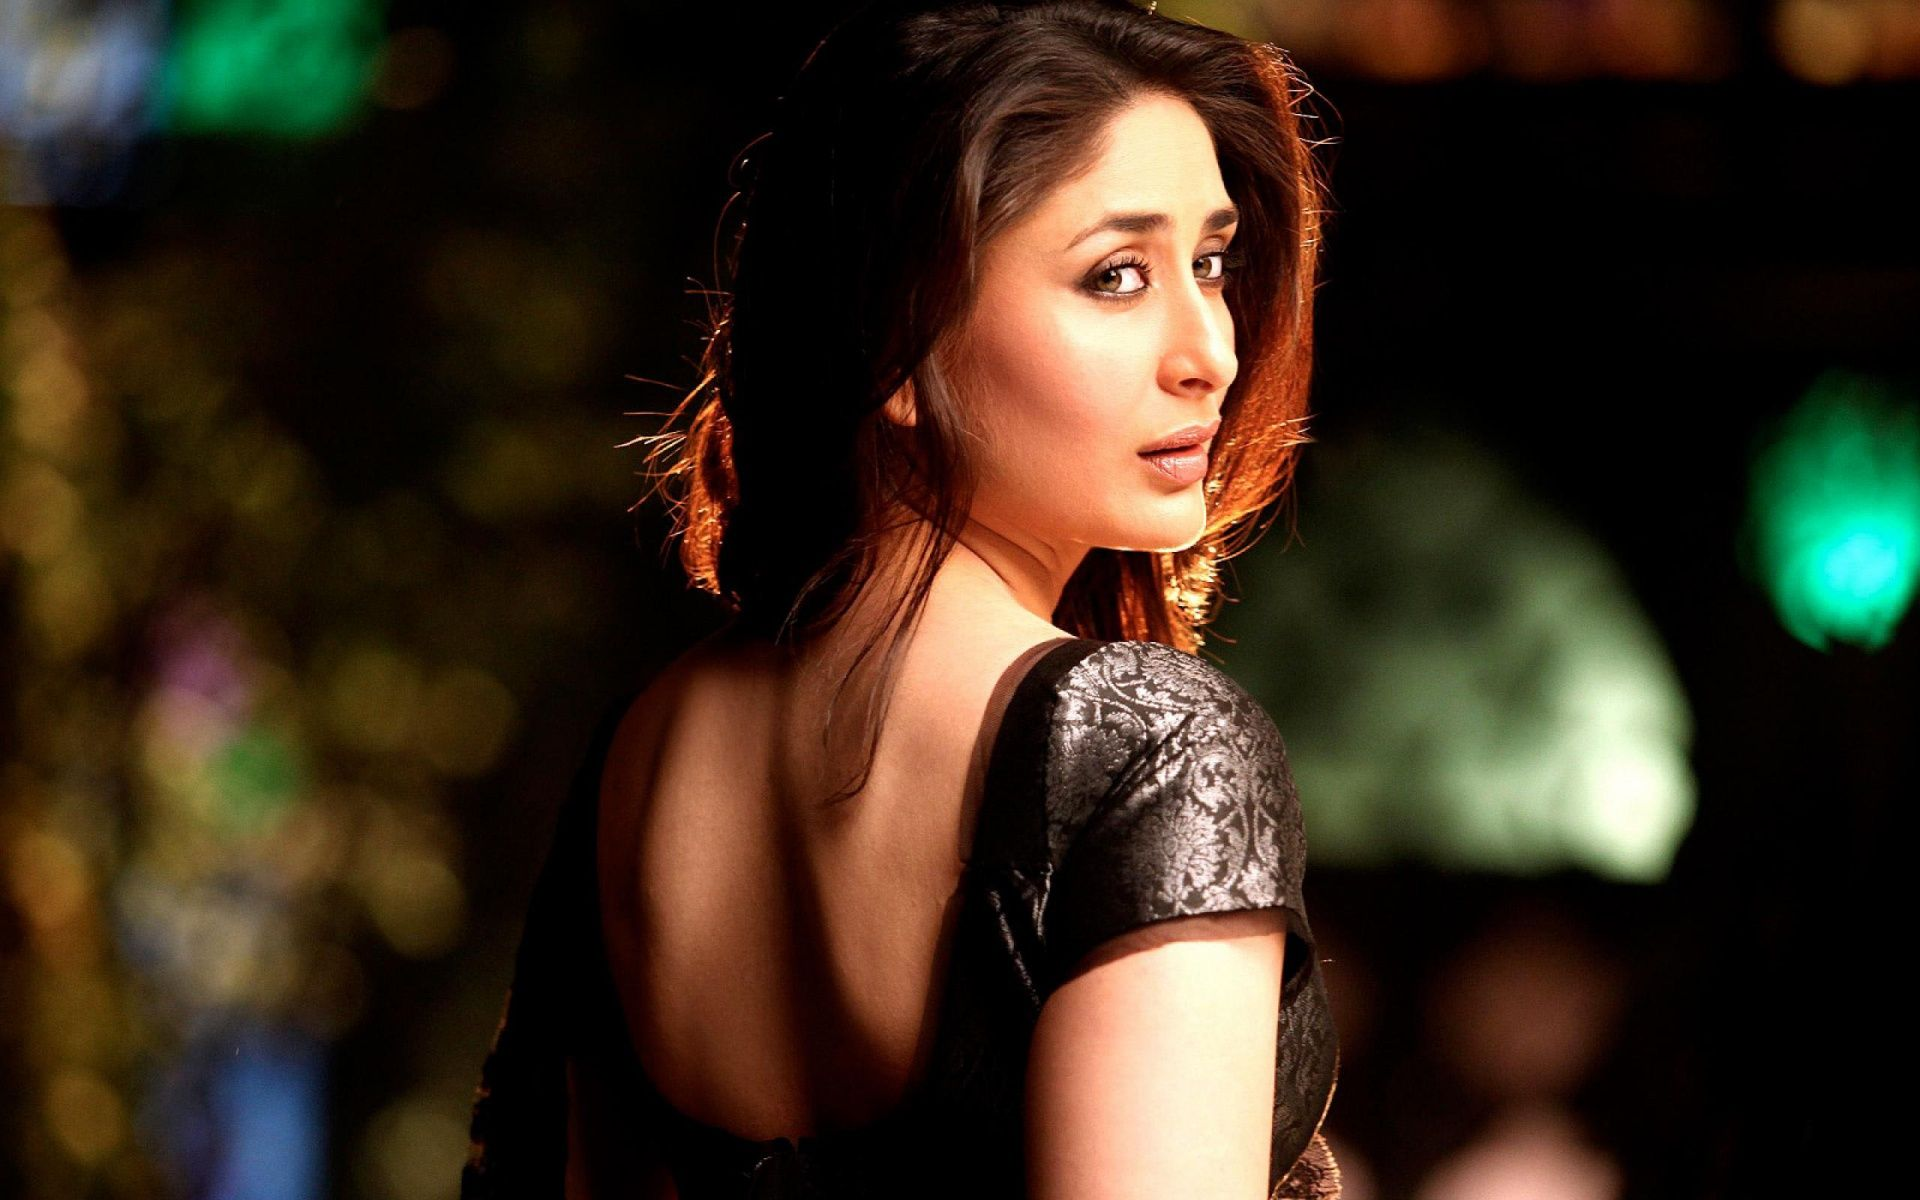 Kareena kapoor hd wallpapers find best latest kareena kapoor hd wallpapersin hd for your pc - Pc wallpaper hd bollywood ...